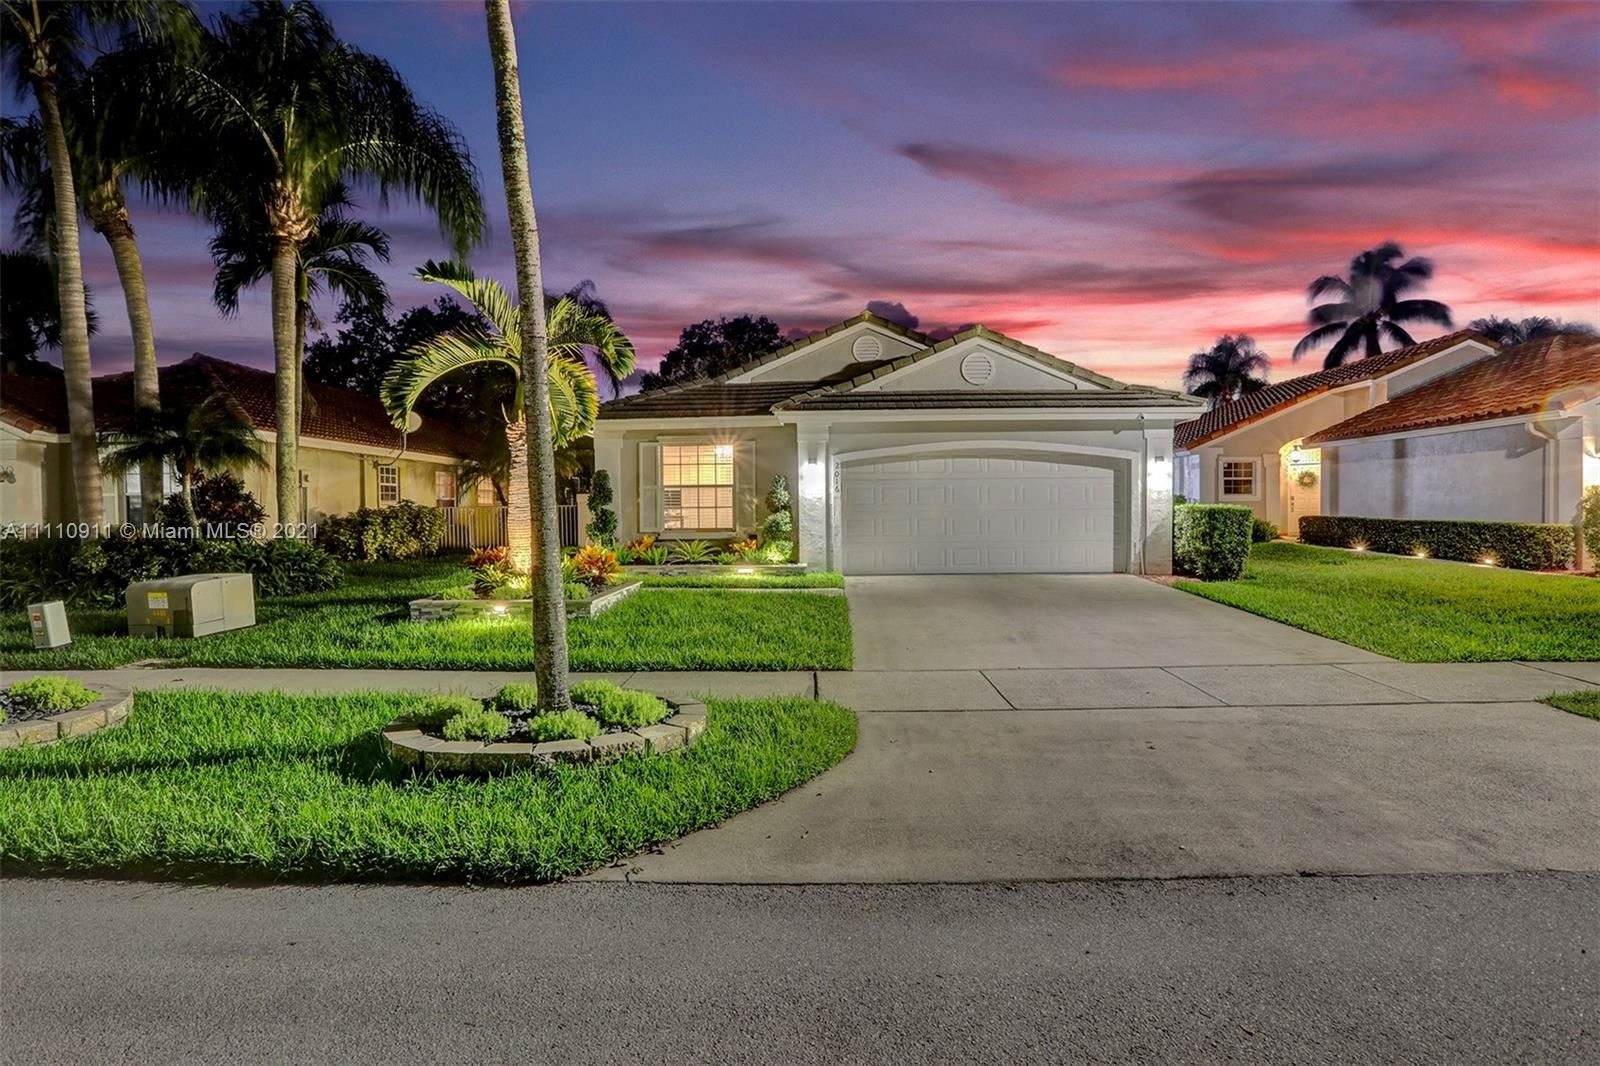 Photo of 2016 NW 182nd Ave, Pembroke Pines, FL 33029 (MLS # A11110911)